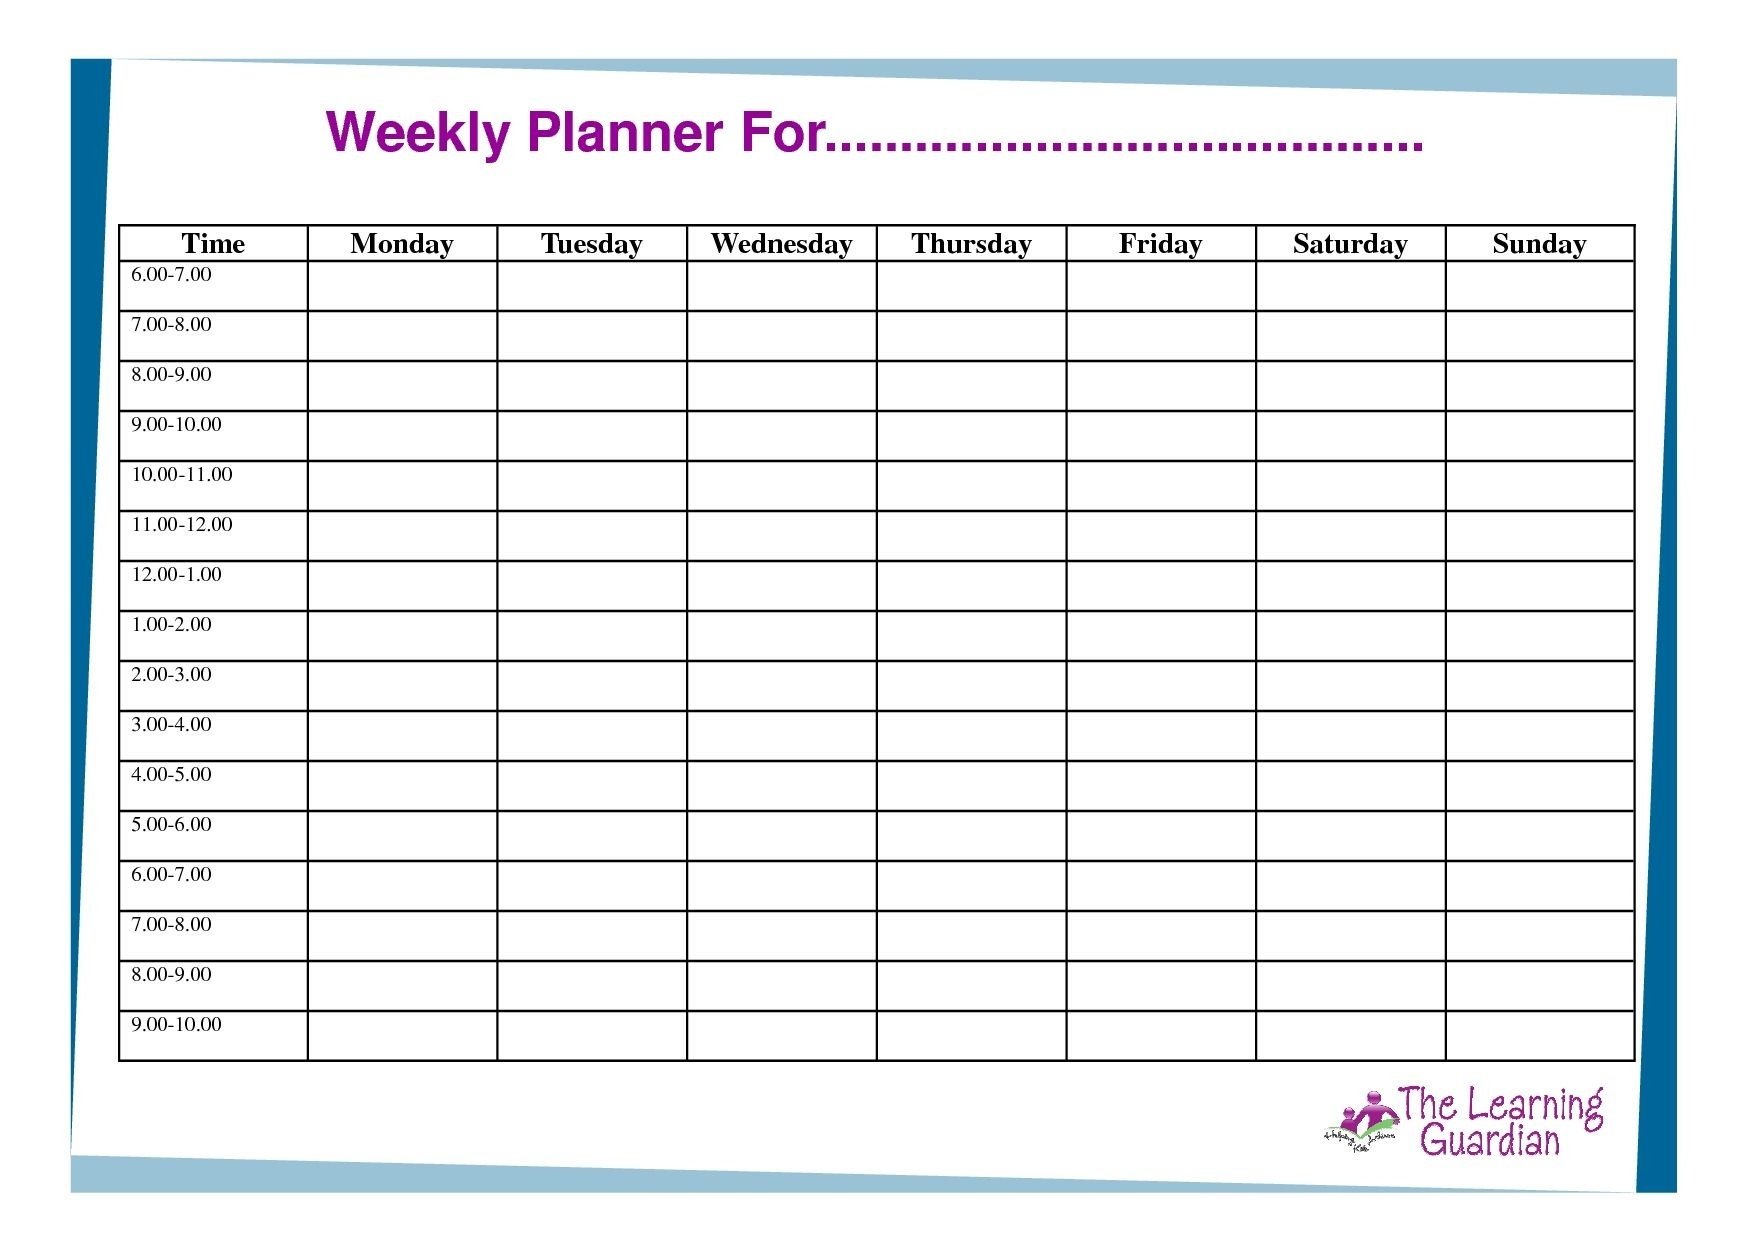 Free Printable Weekly Calendar Templates Planner For Time 7 Day Calendar Template Free